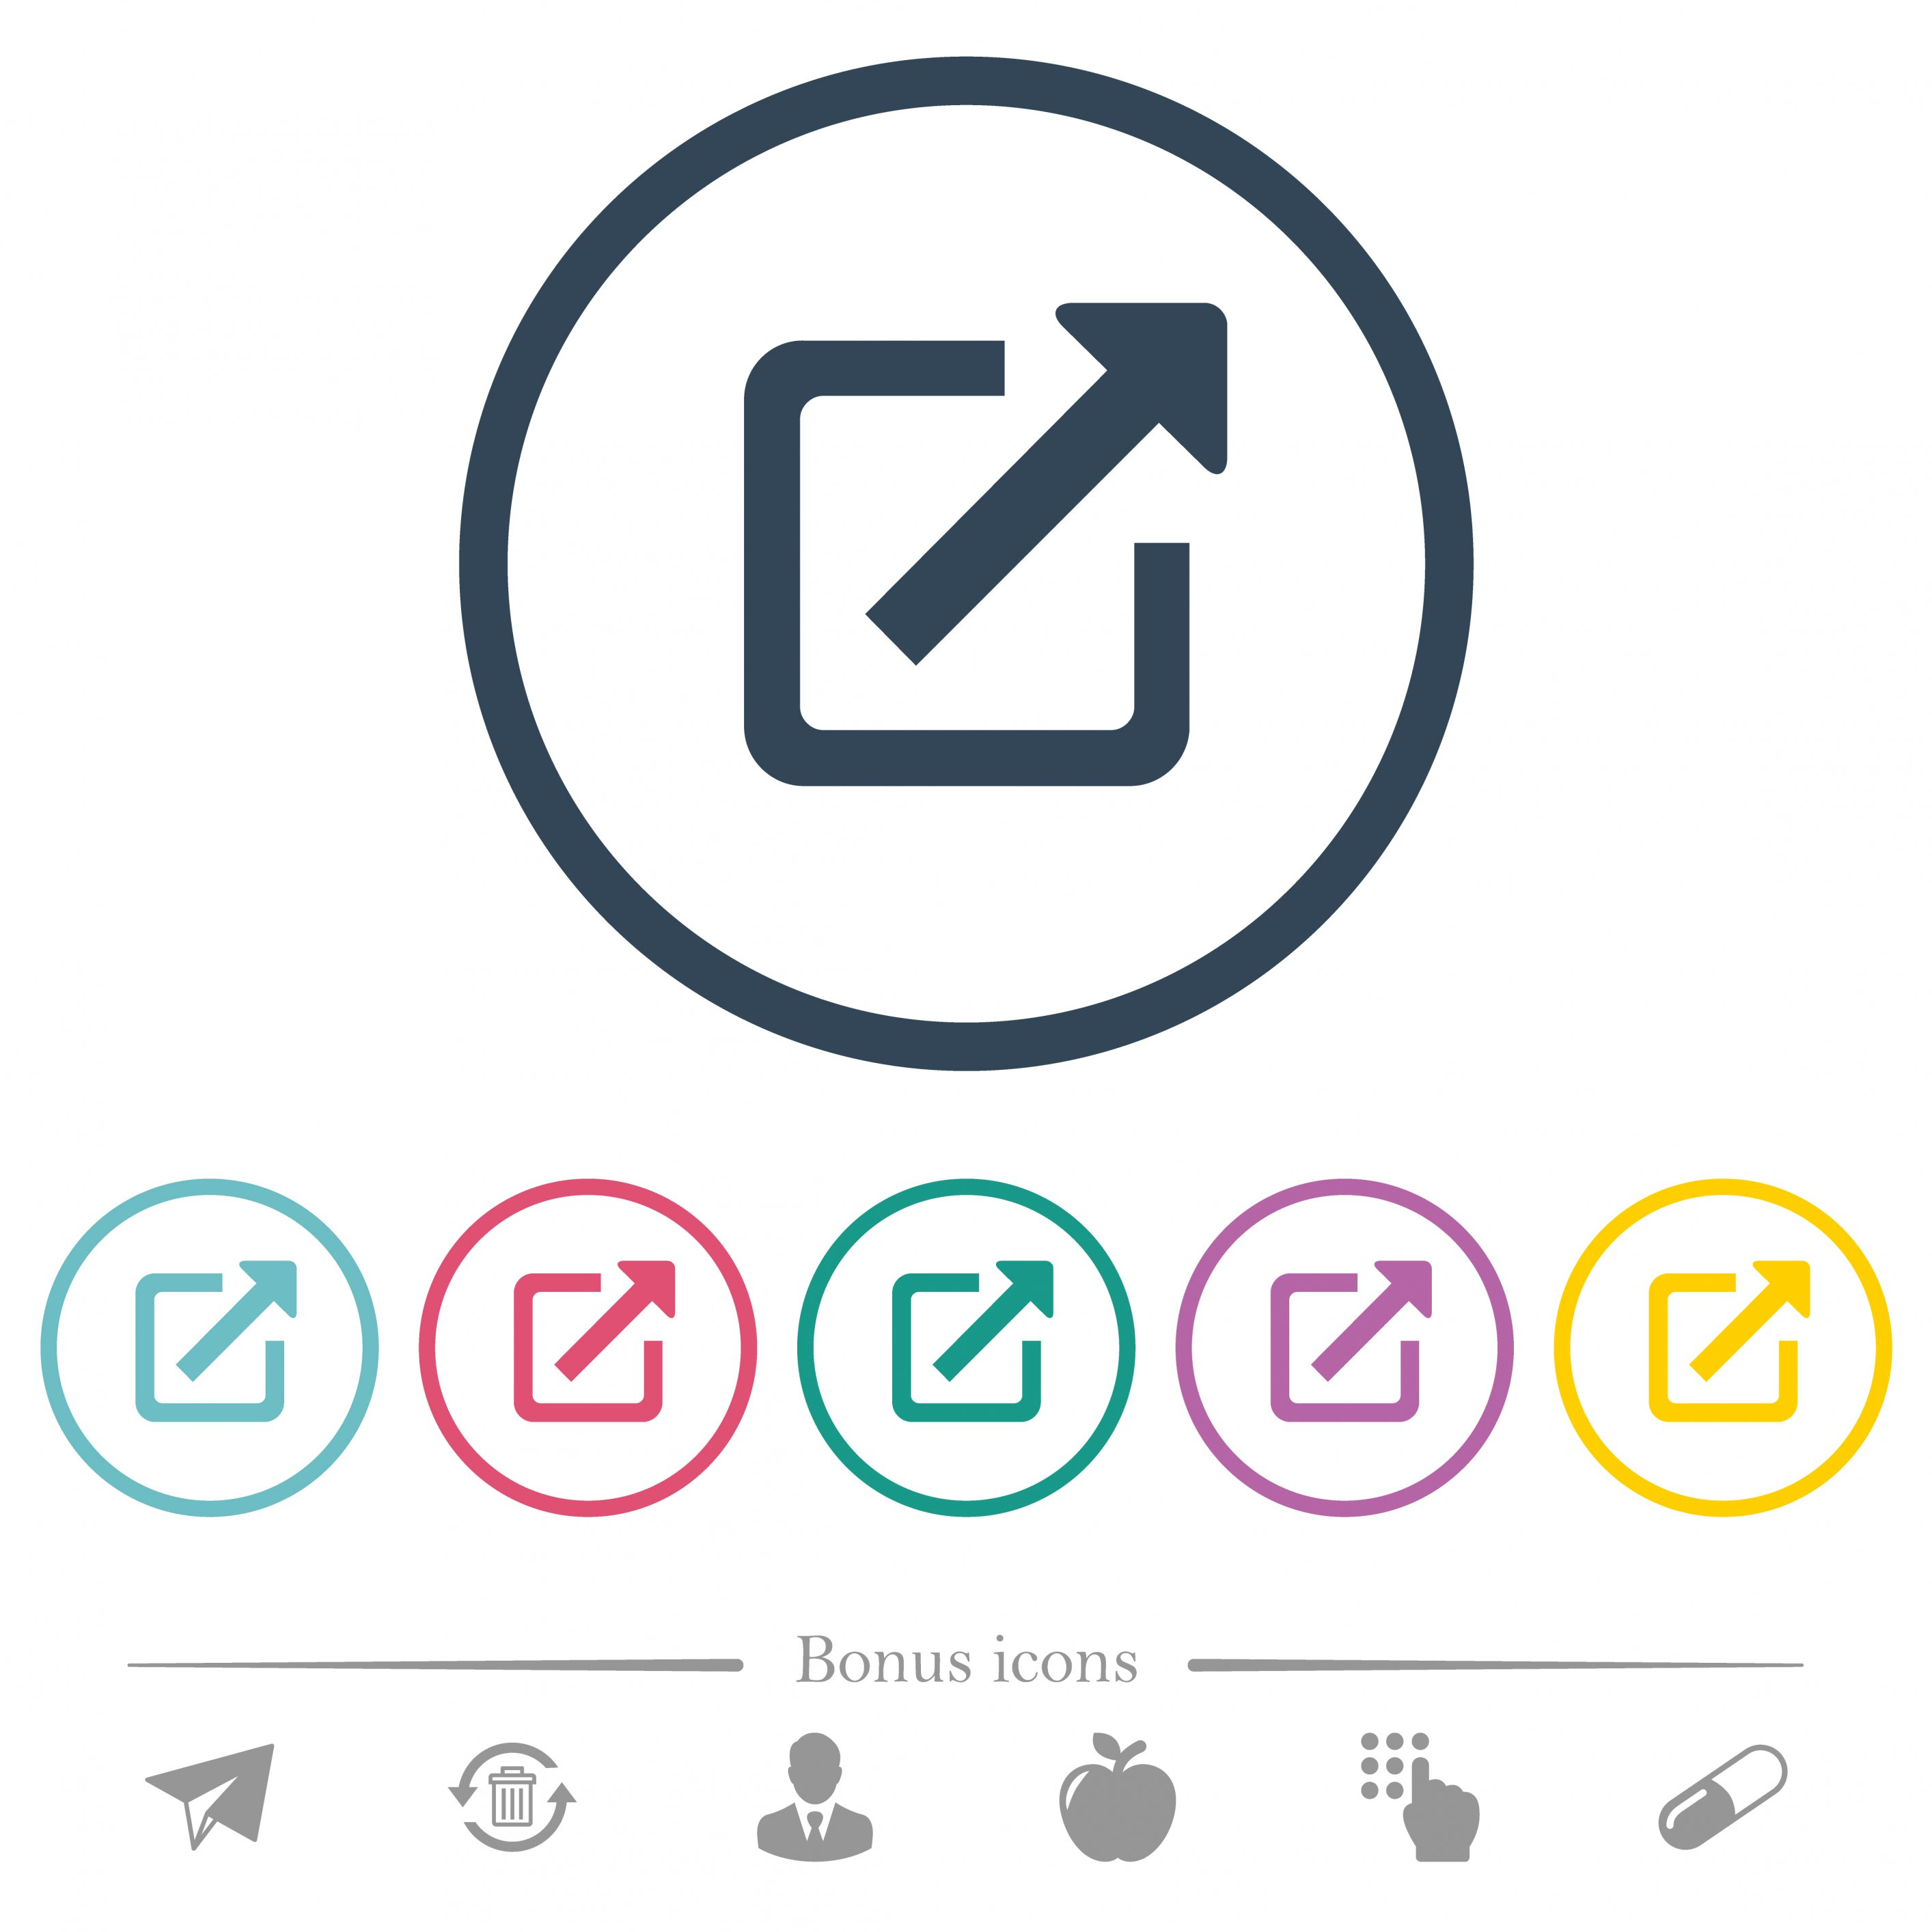 Open in new window flat color icons in round outlines. 6 bonus icons included. - Free image